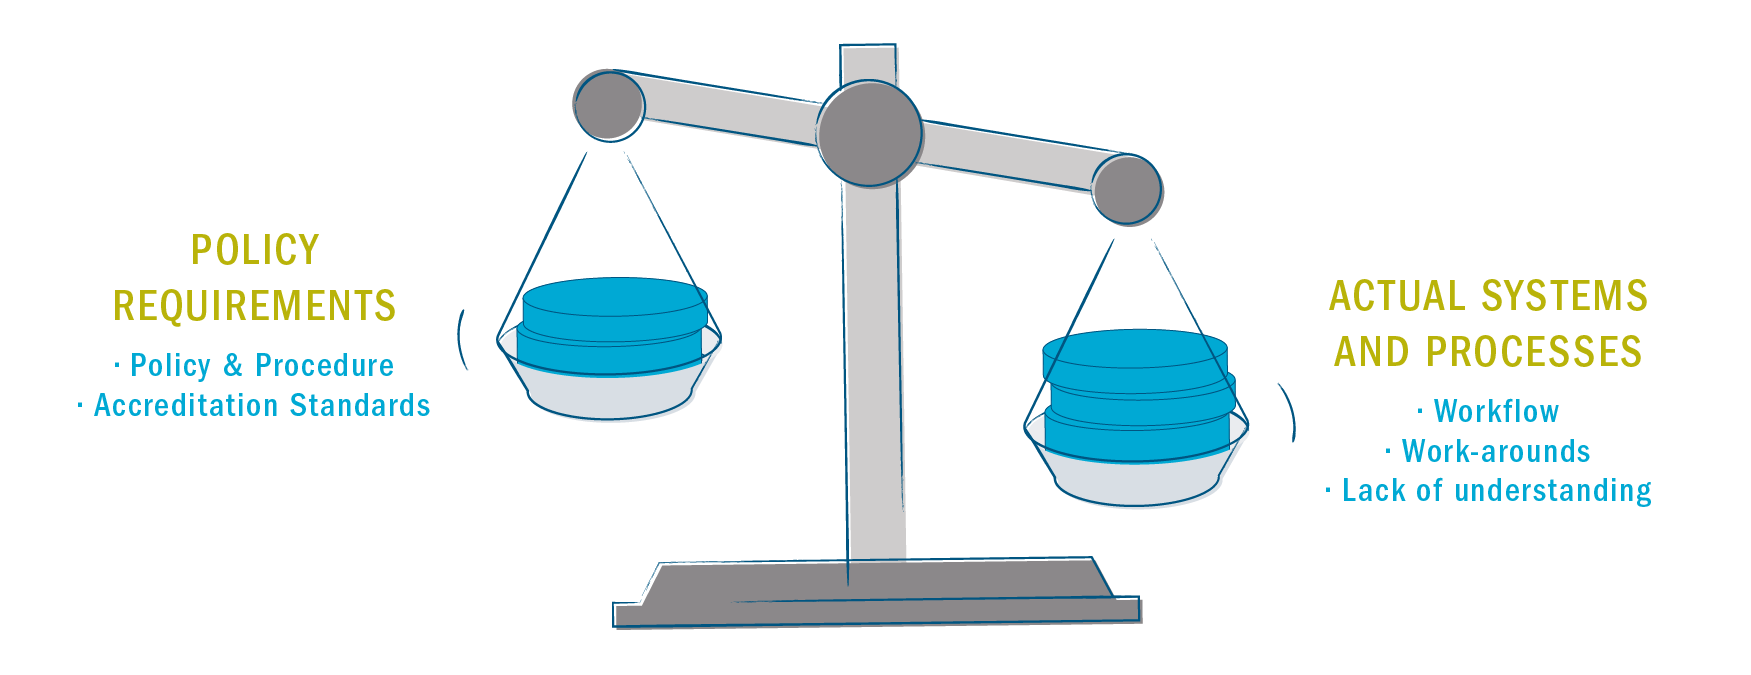 Diagram describing the balance of policy requirements with actual systems and processes